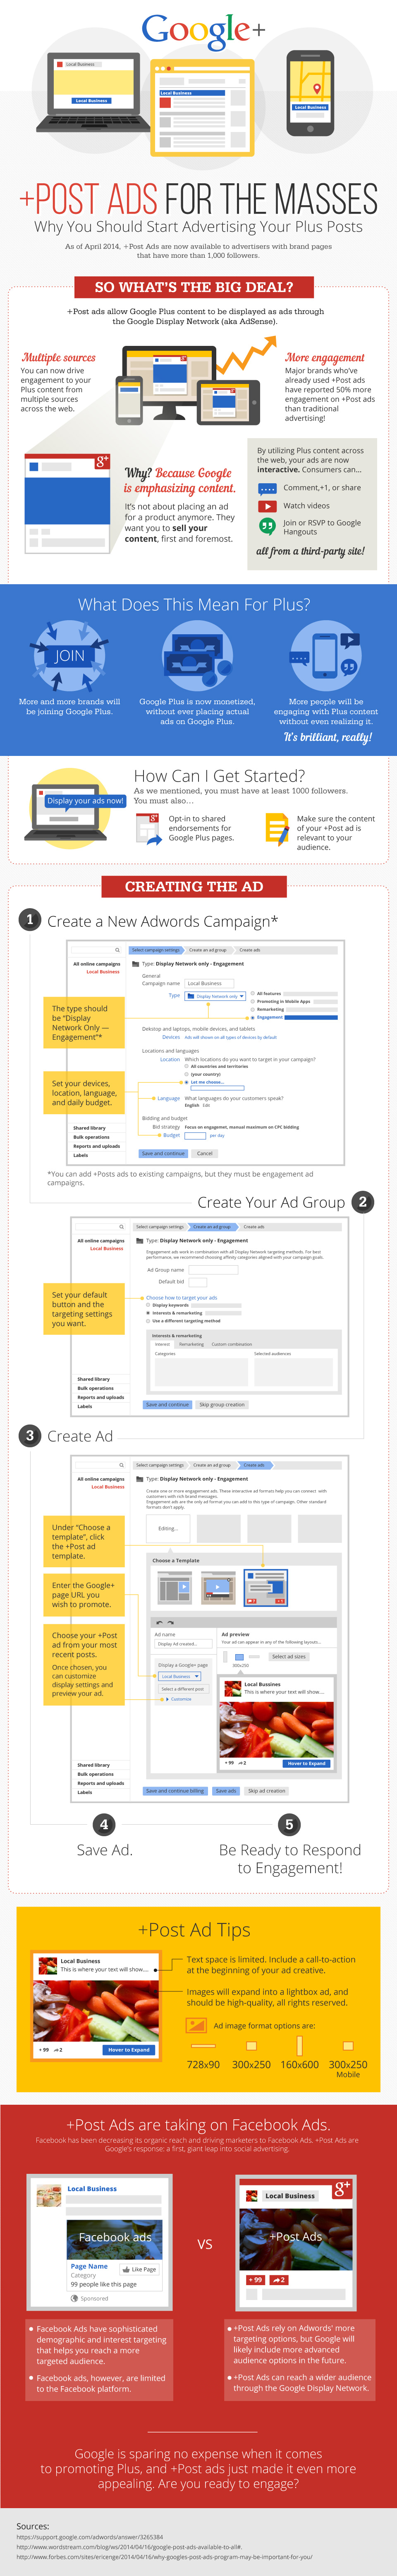 How to Use Google Plus Post Ads